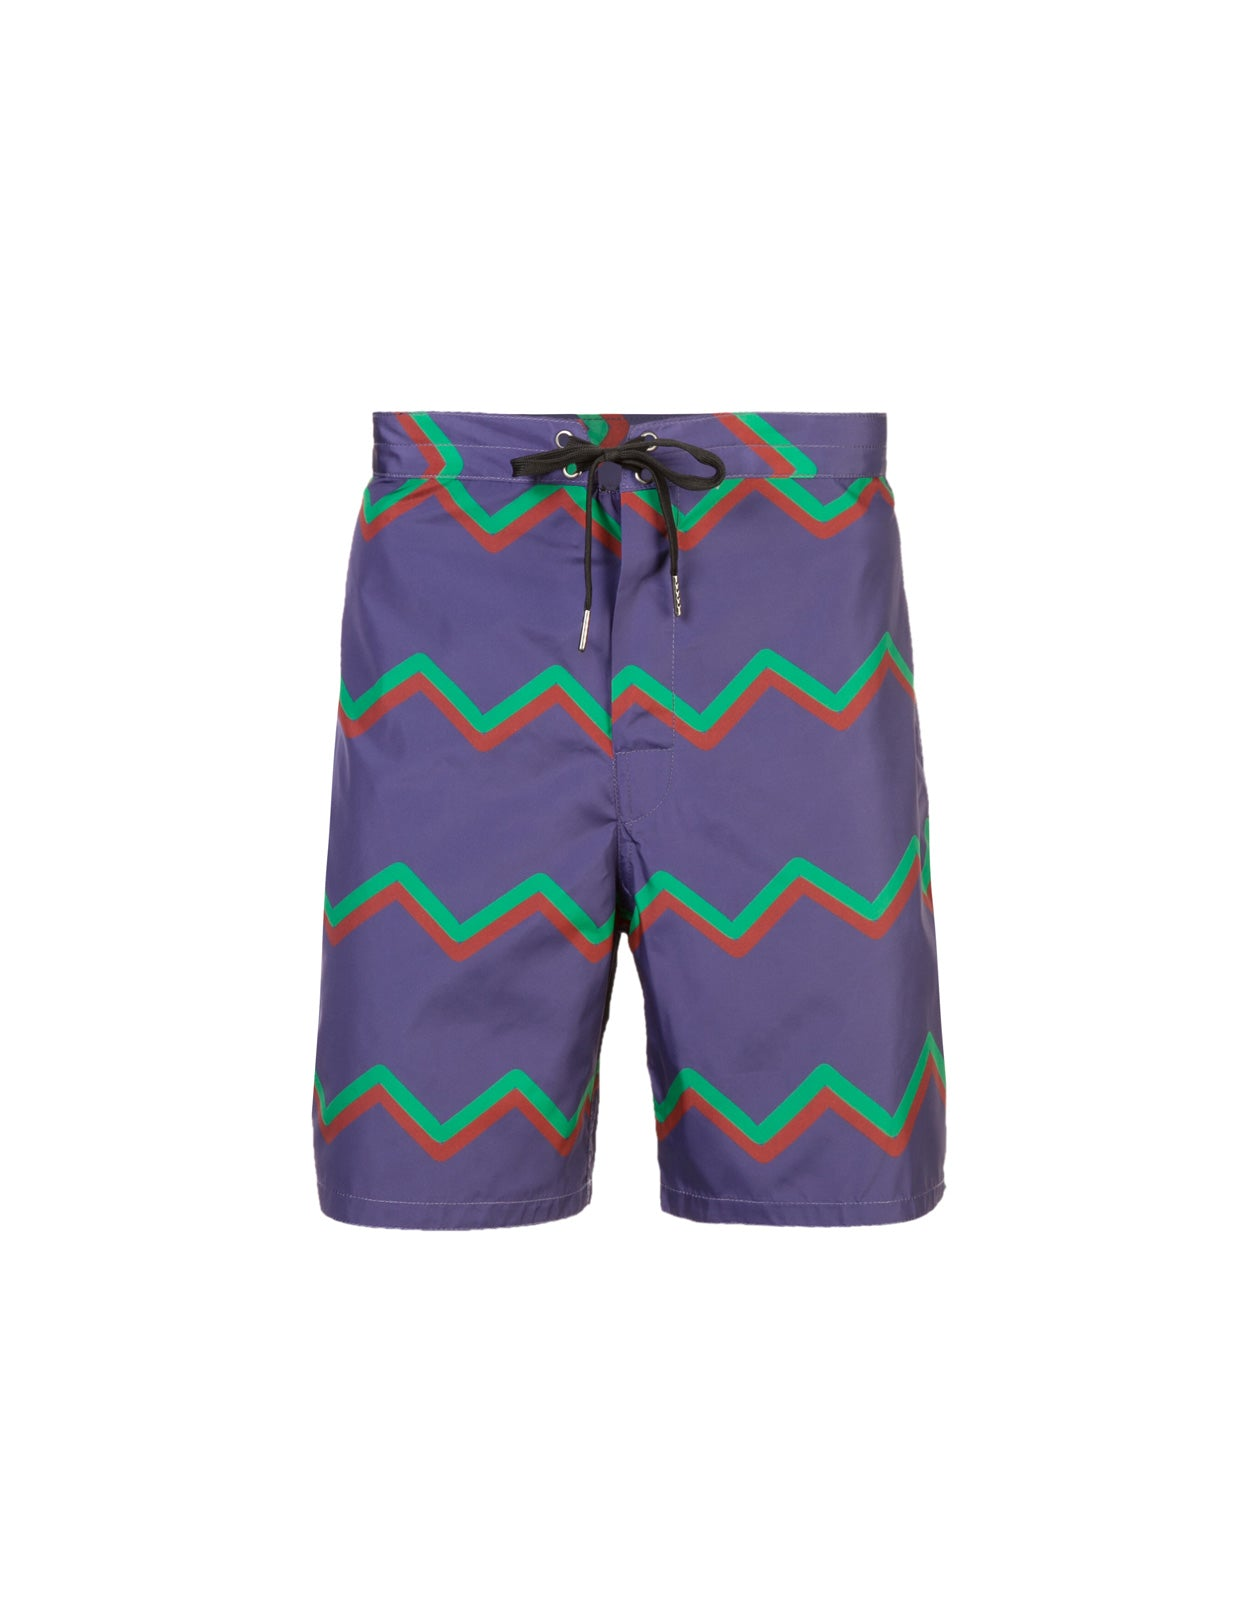 Ziggy board short in purple multi colored chevron stripe print.